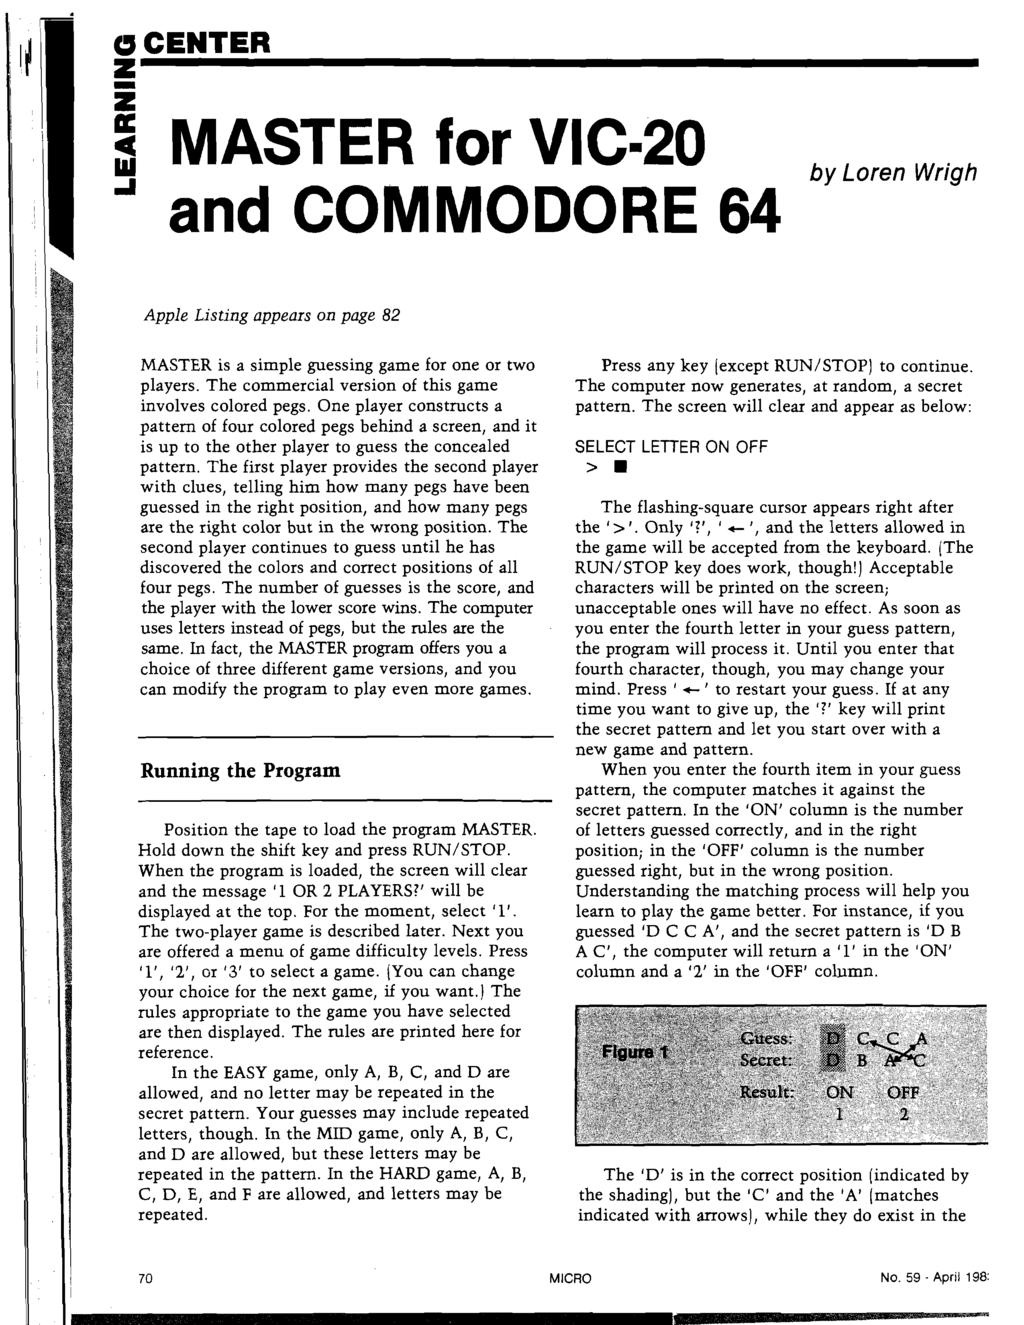 Advancing Computer Knowledge Pdf Commodore 64 Rev A Motherboard Schematics From 1982 Learning Center Master For Vic 20 And By Loren Wrigh Pple L